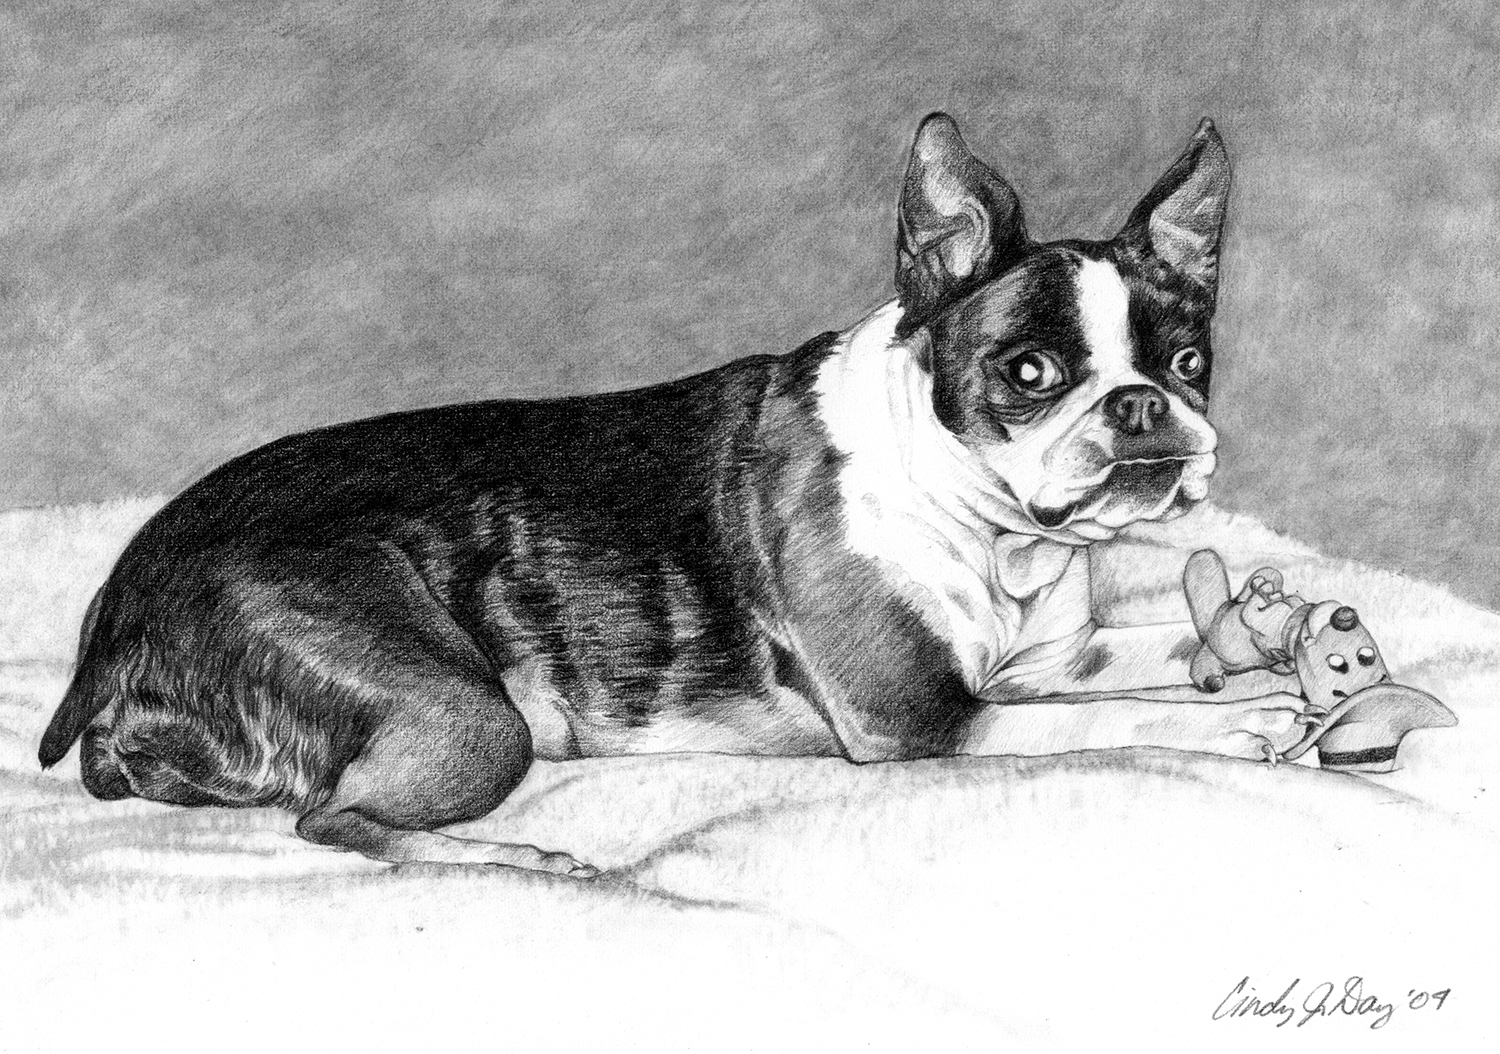 Bailey - 8x10 Pencil Drawing